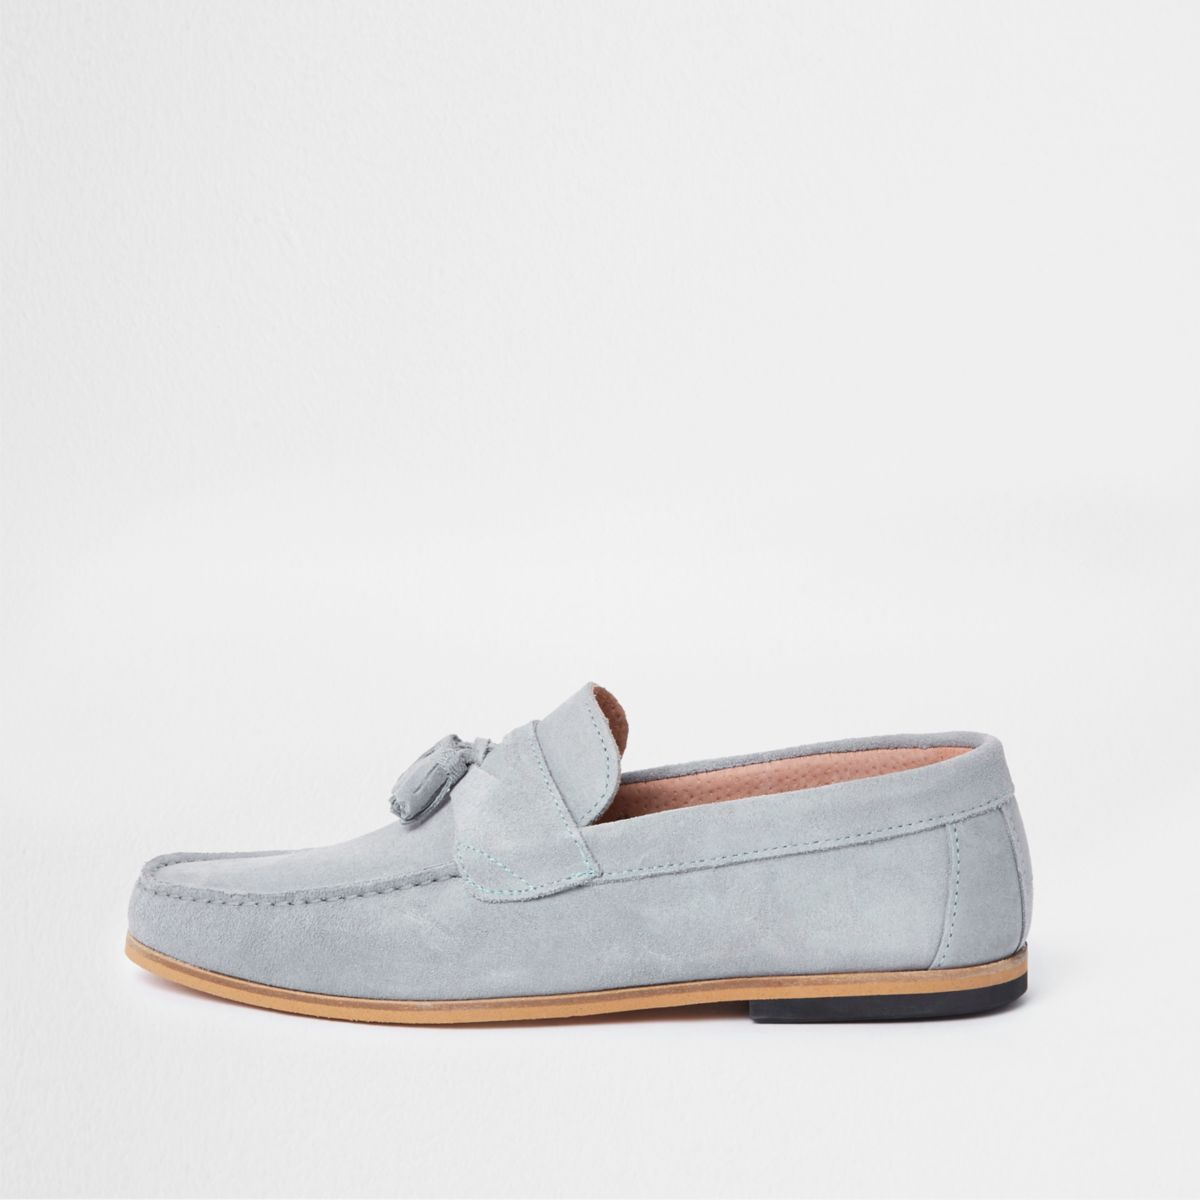 Light blue suede tassel loafers